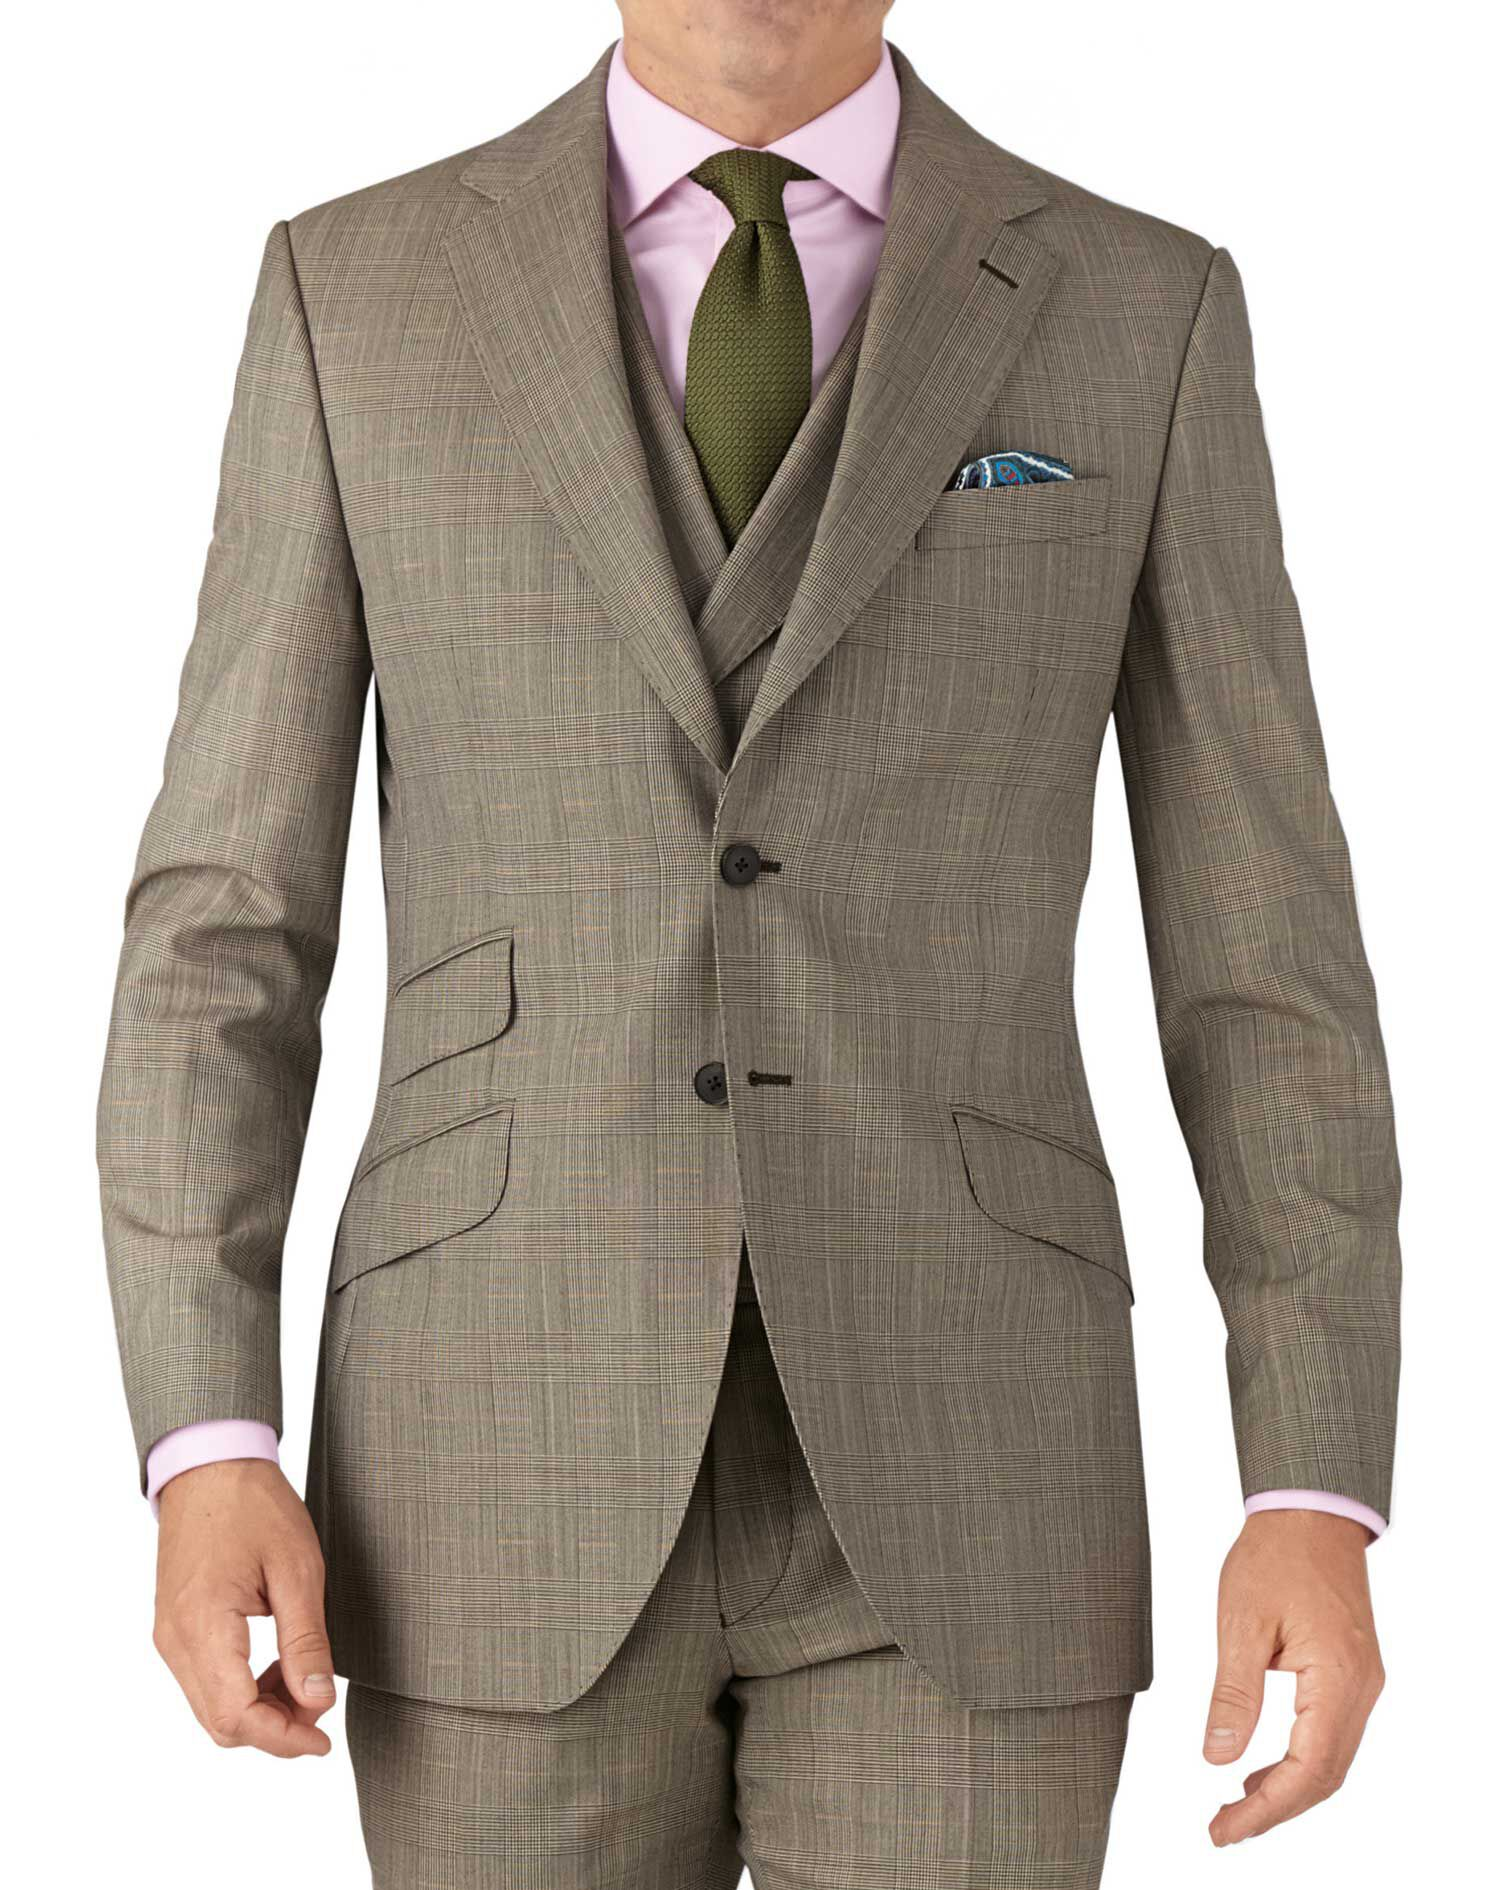 Beige Slim Fit British Panama Luxury Check Suit Wool Jacket Size 36 Regular by Charles Tyrwhitt